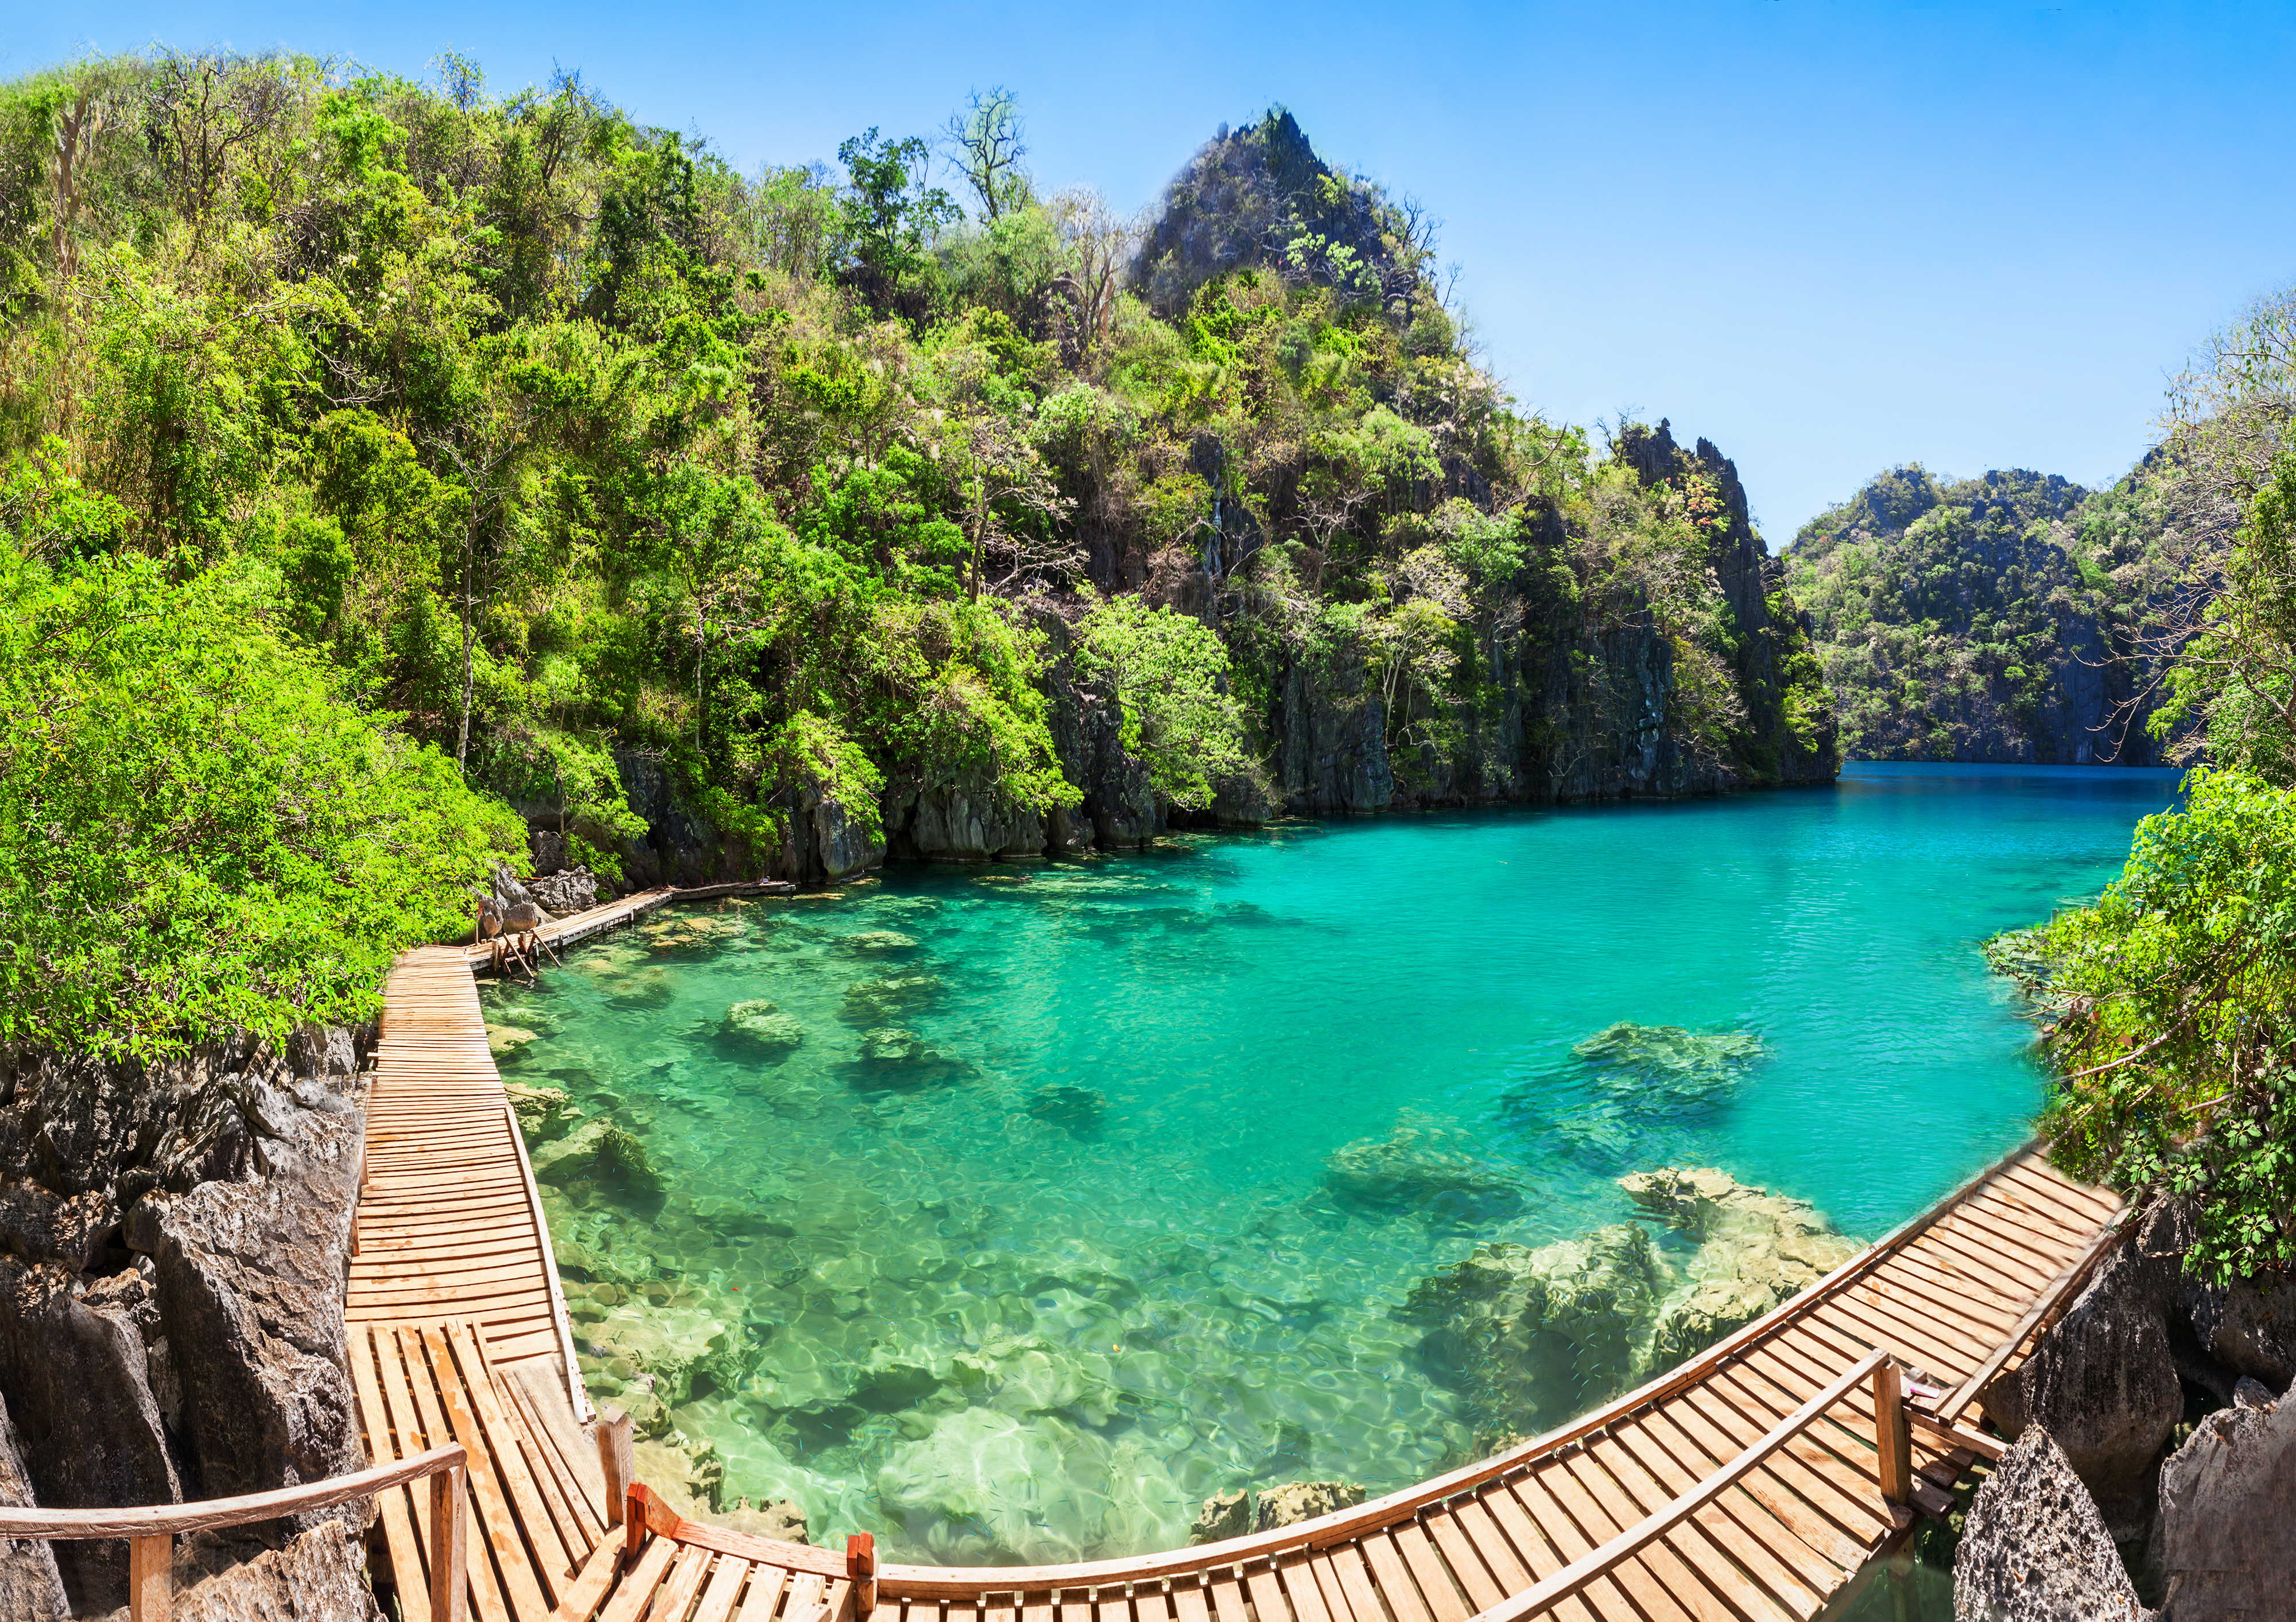 4 Days 3 Nights Coron to El Nido Boat Expedition Tour - day 1